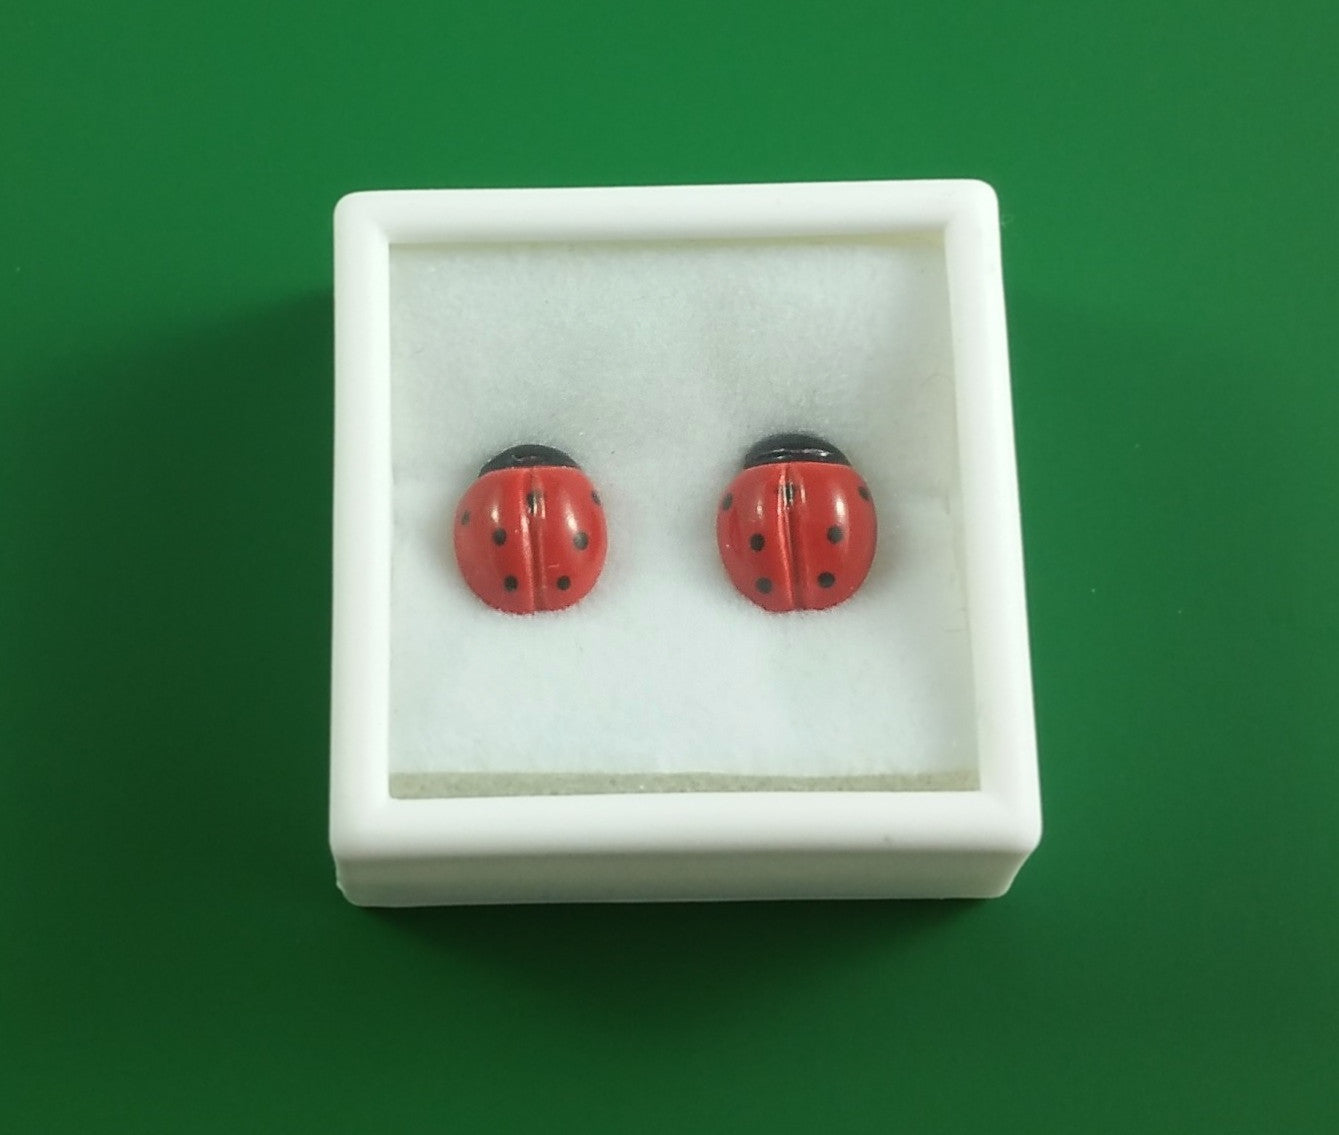 Medium porcelain ladybug stud earrings by Joseph Chiang